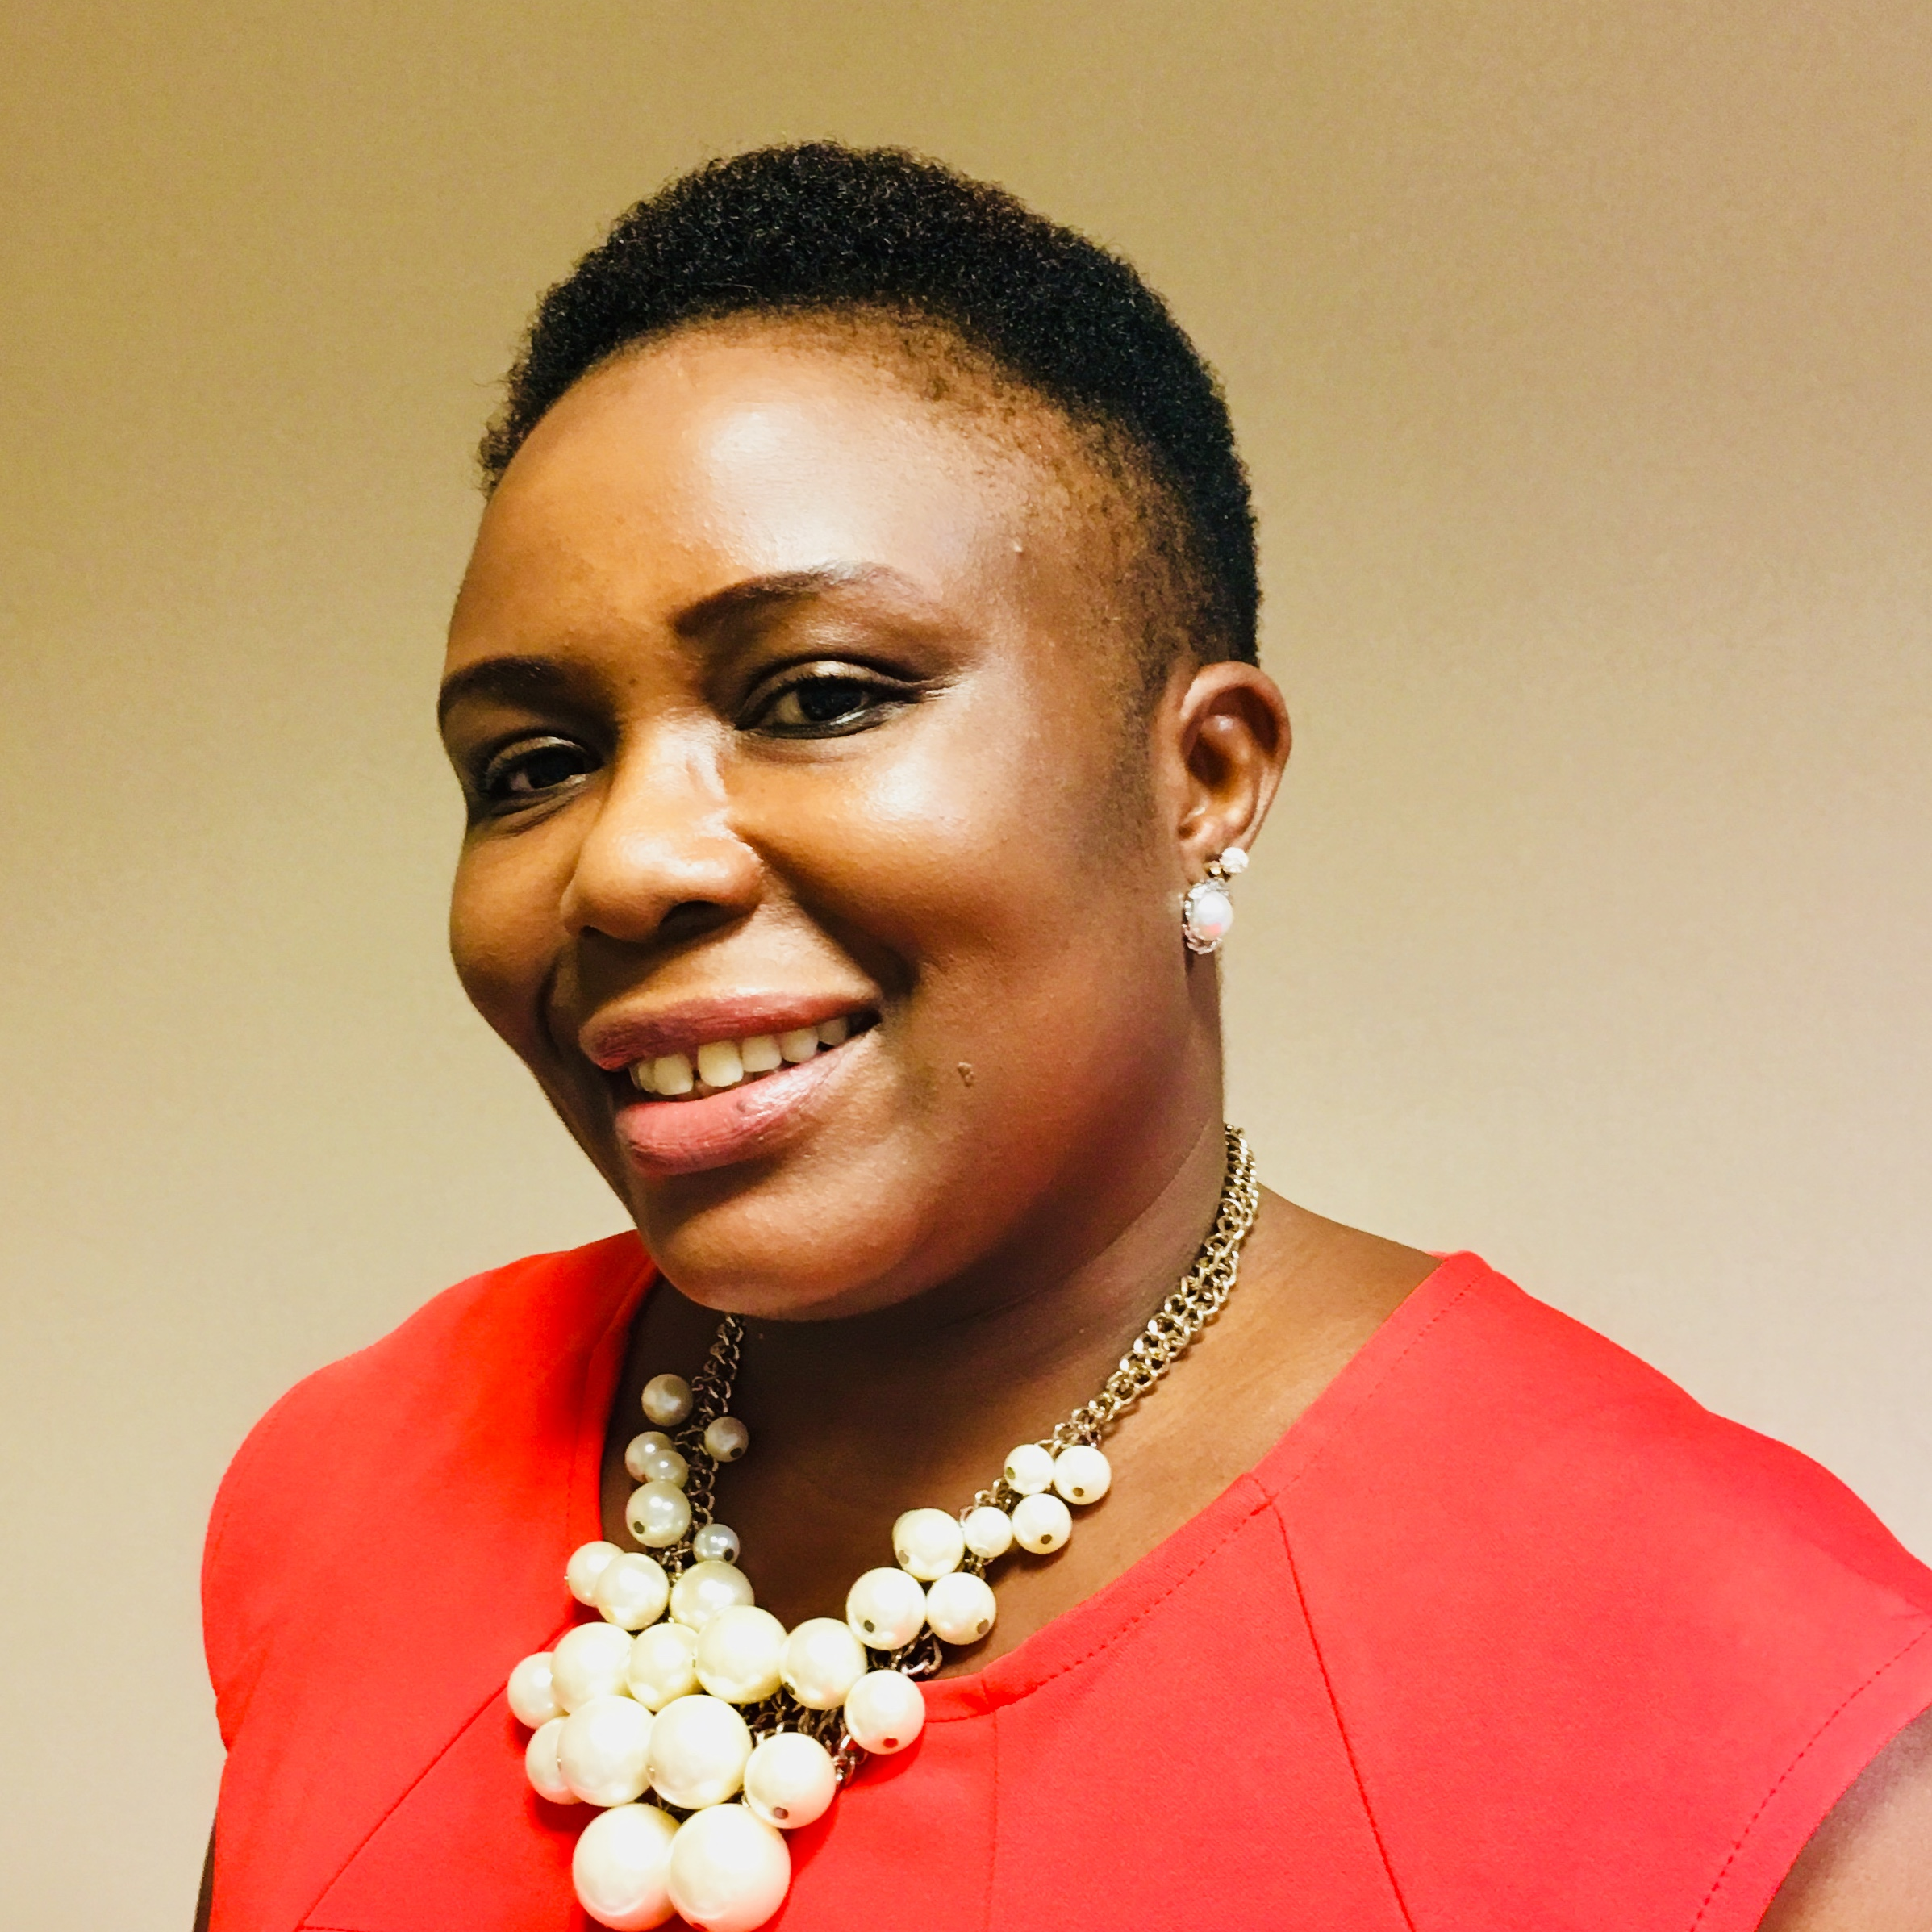 Edna Essien, Director, Data Protection and Technology Compliance, APAC at Scotiabank